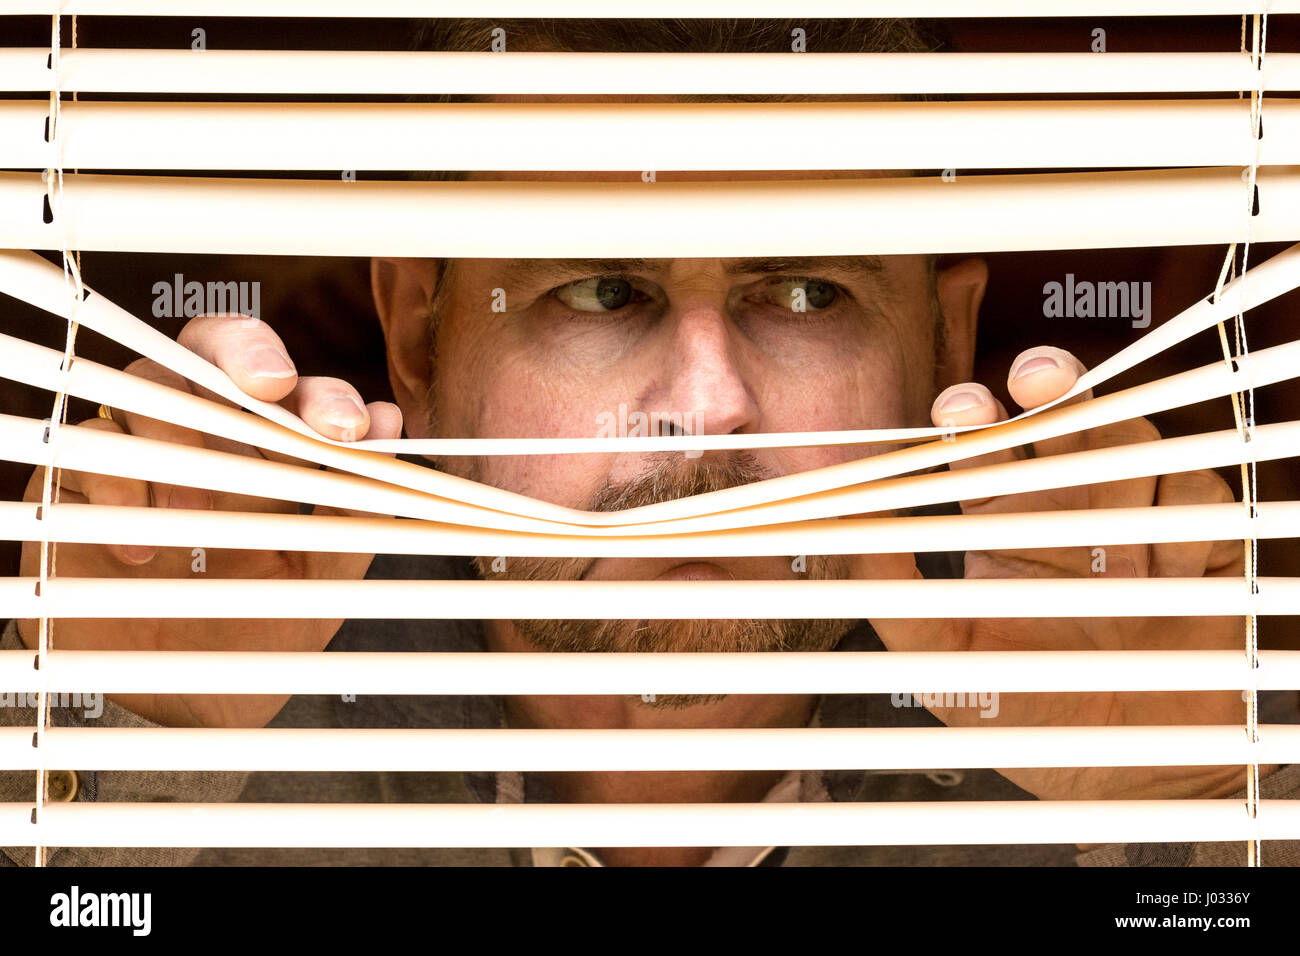 A middle-aged male looking through blinds / window. - Stock Image